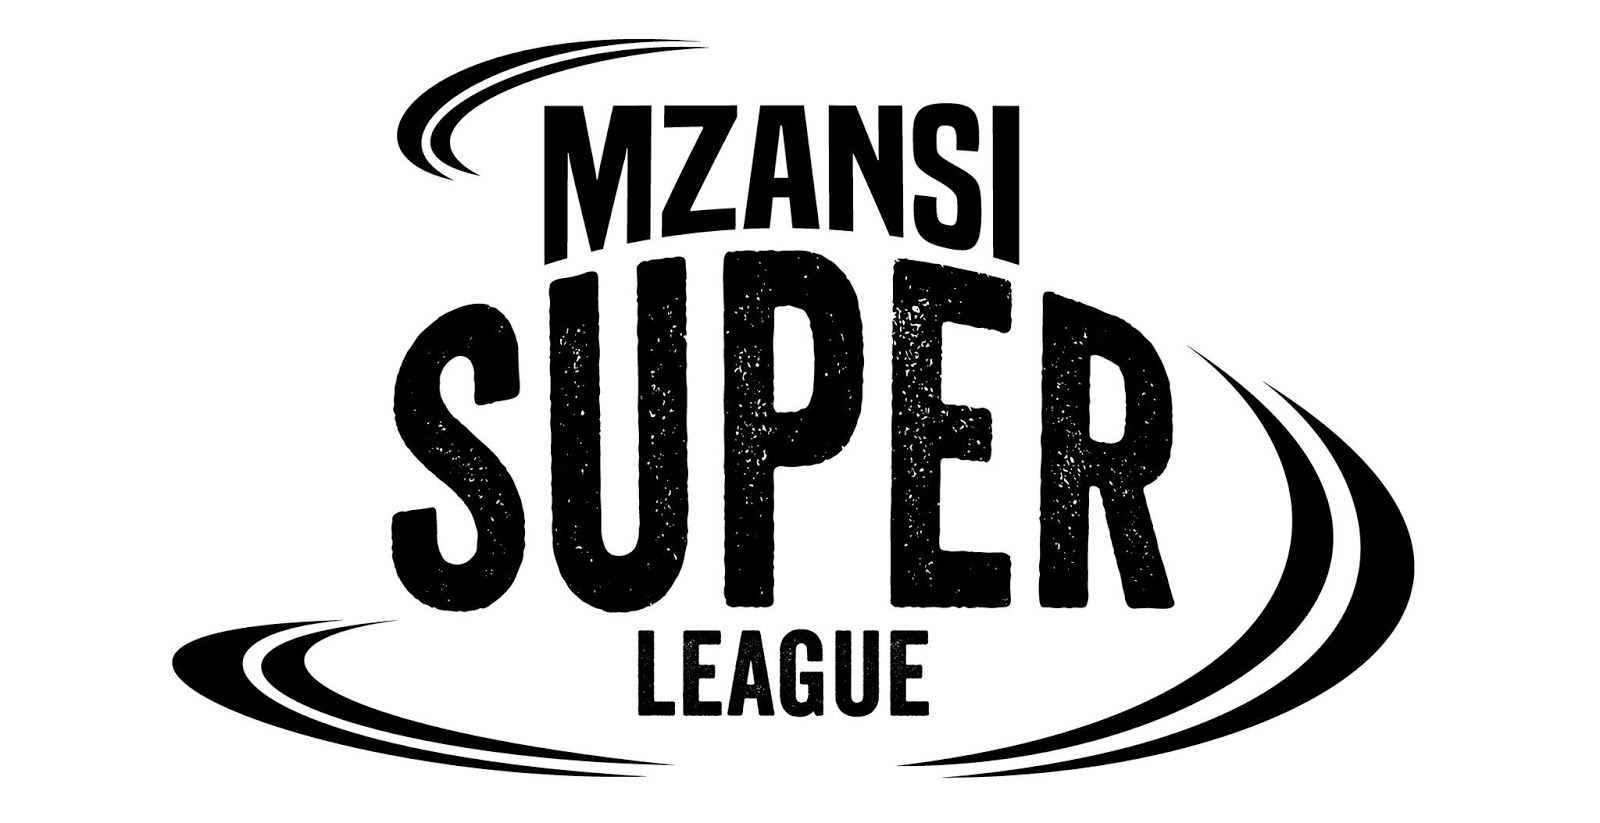 Mzansi Super League - T20 Cricket - South Africa